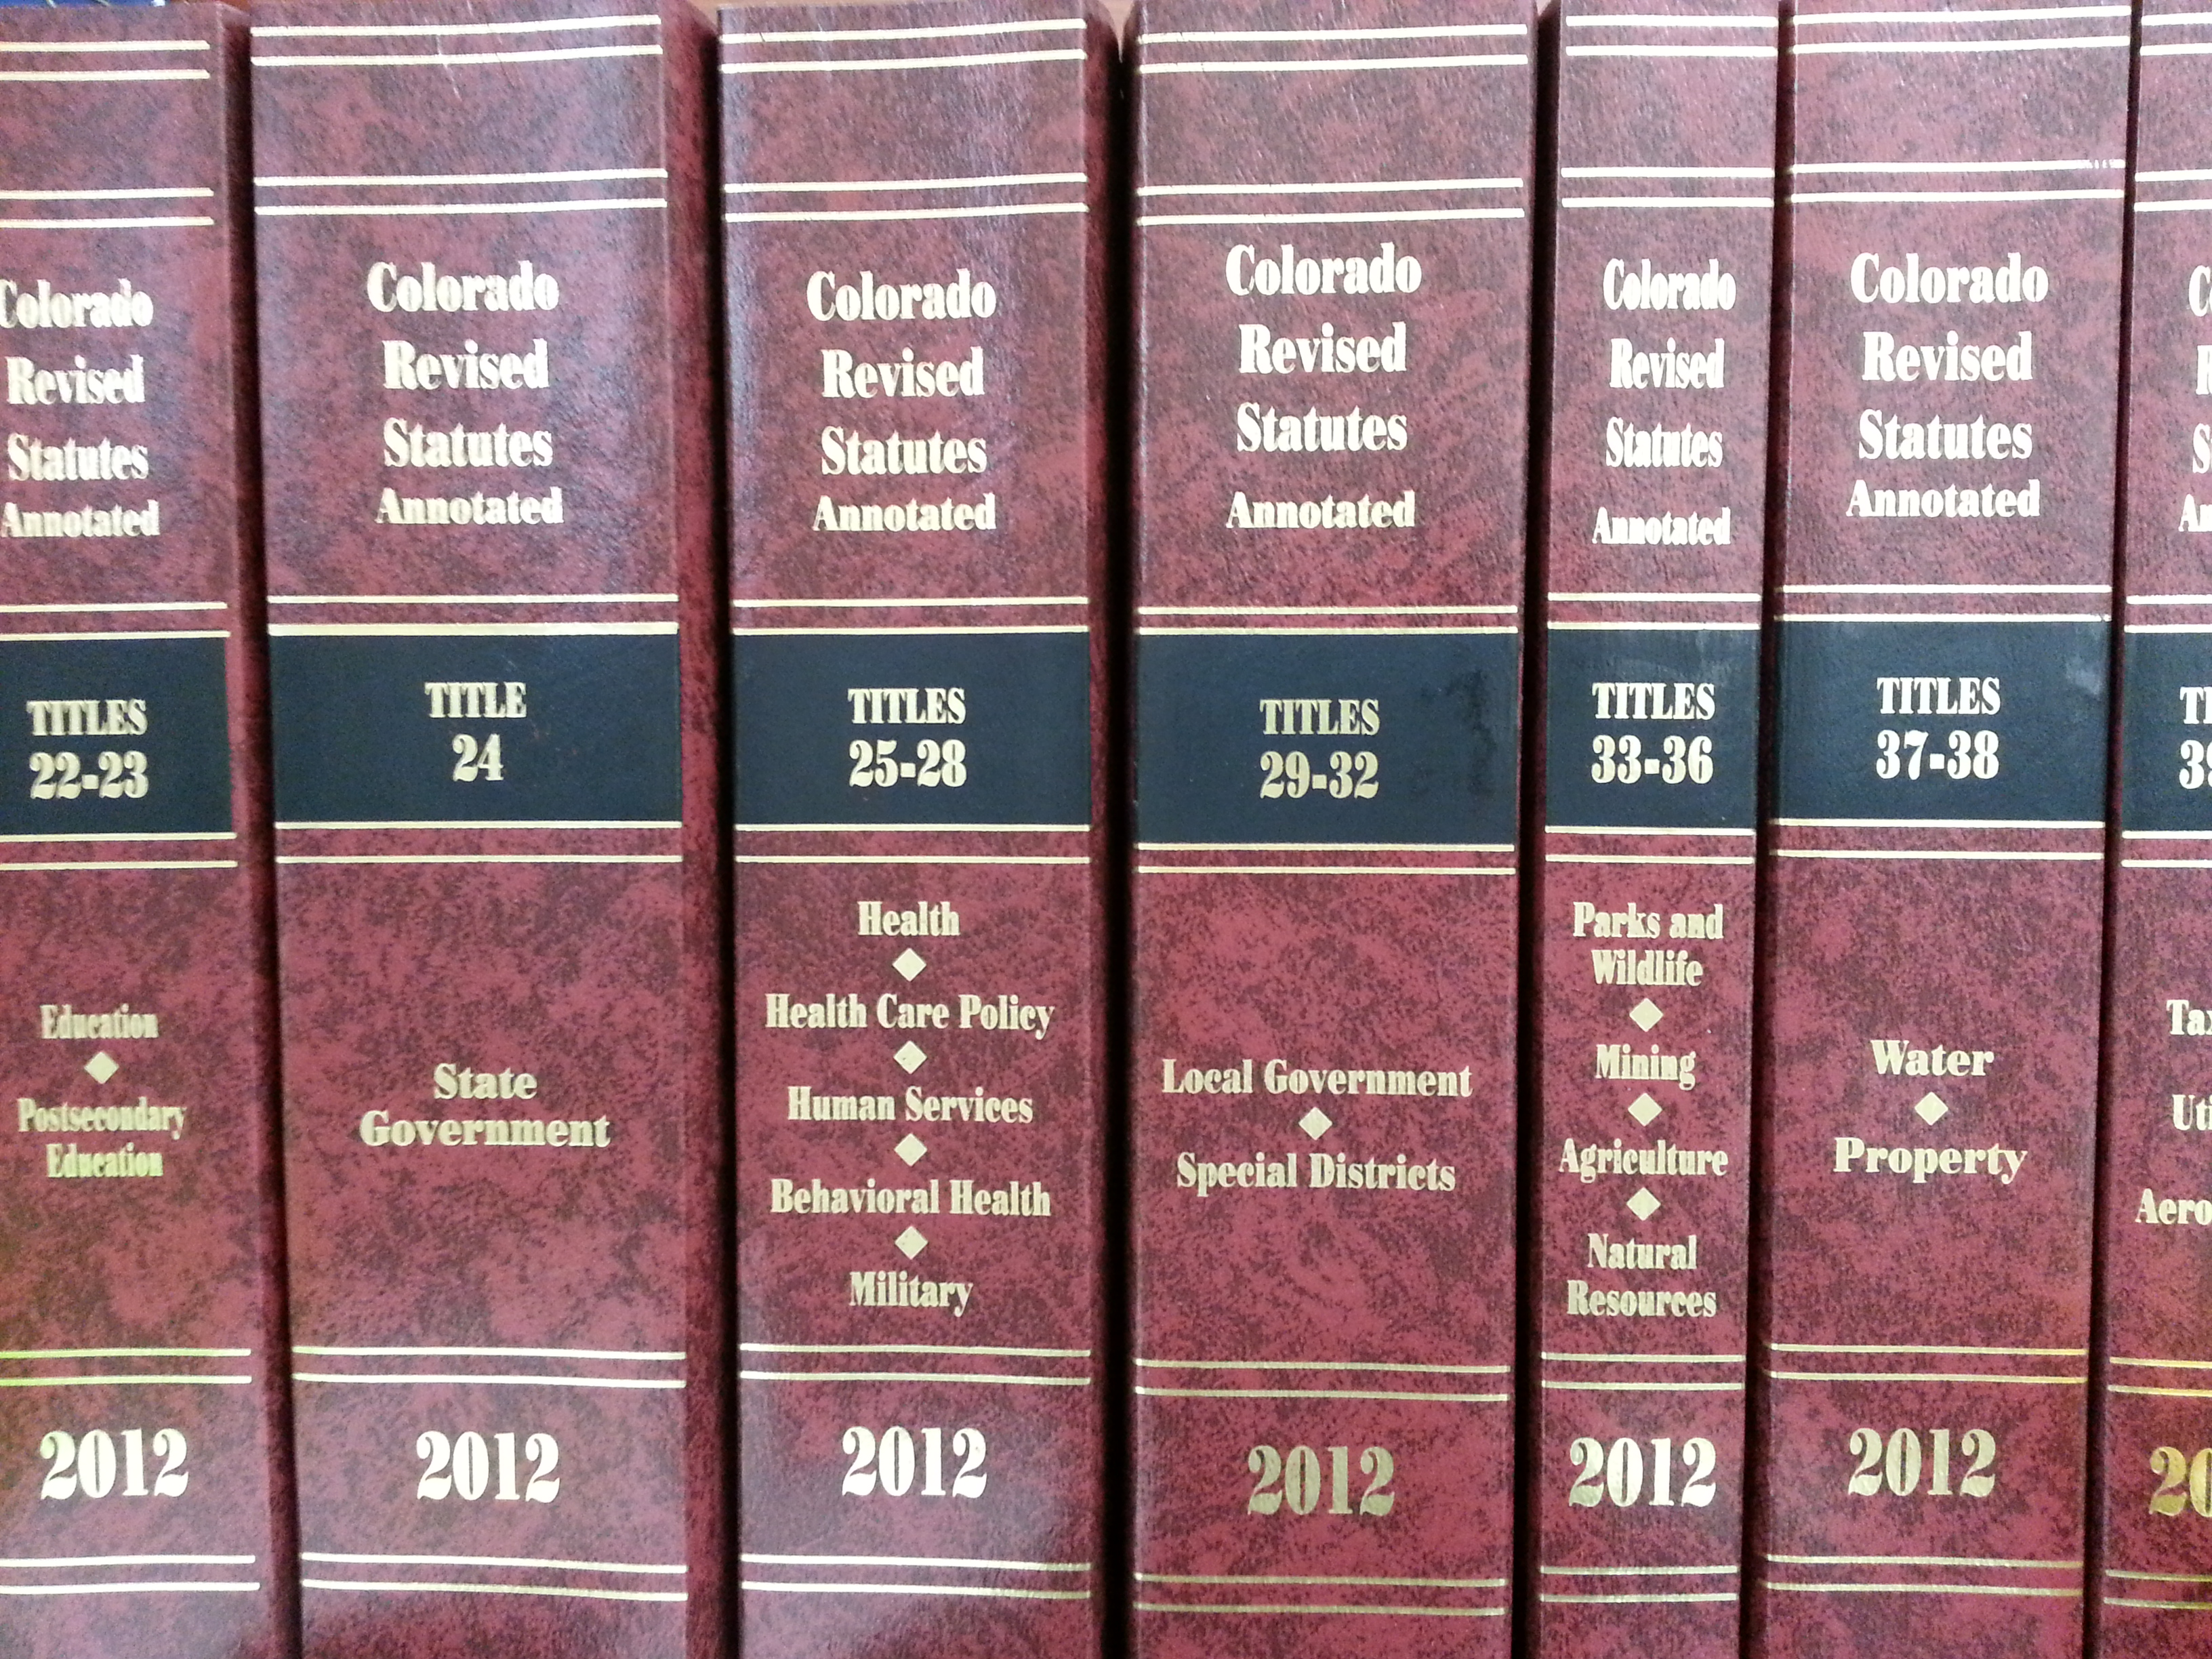 The Publications of the Colorado General Assembly